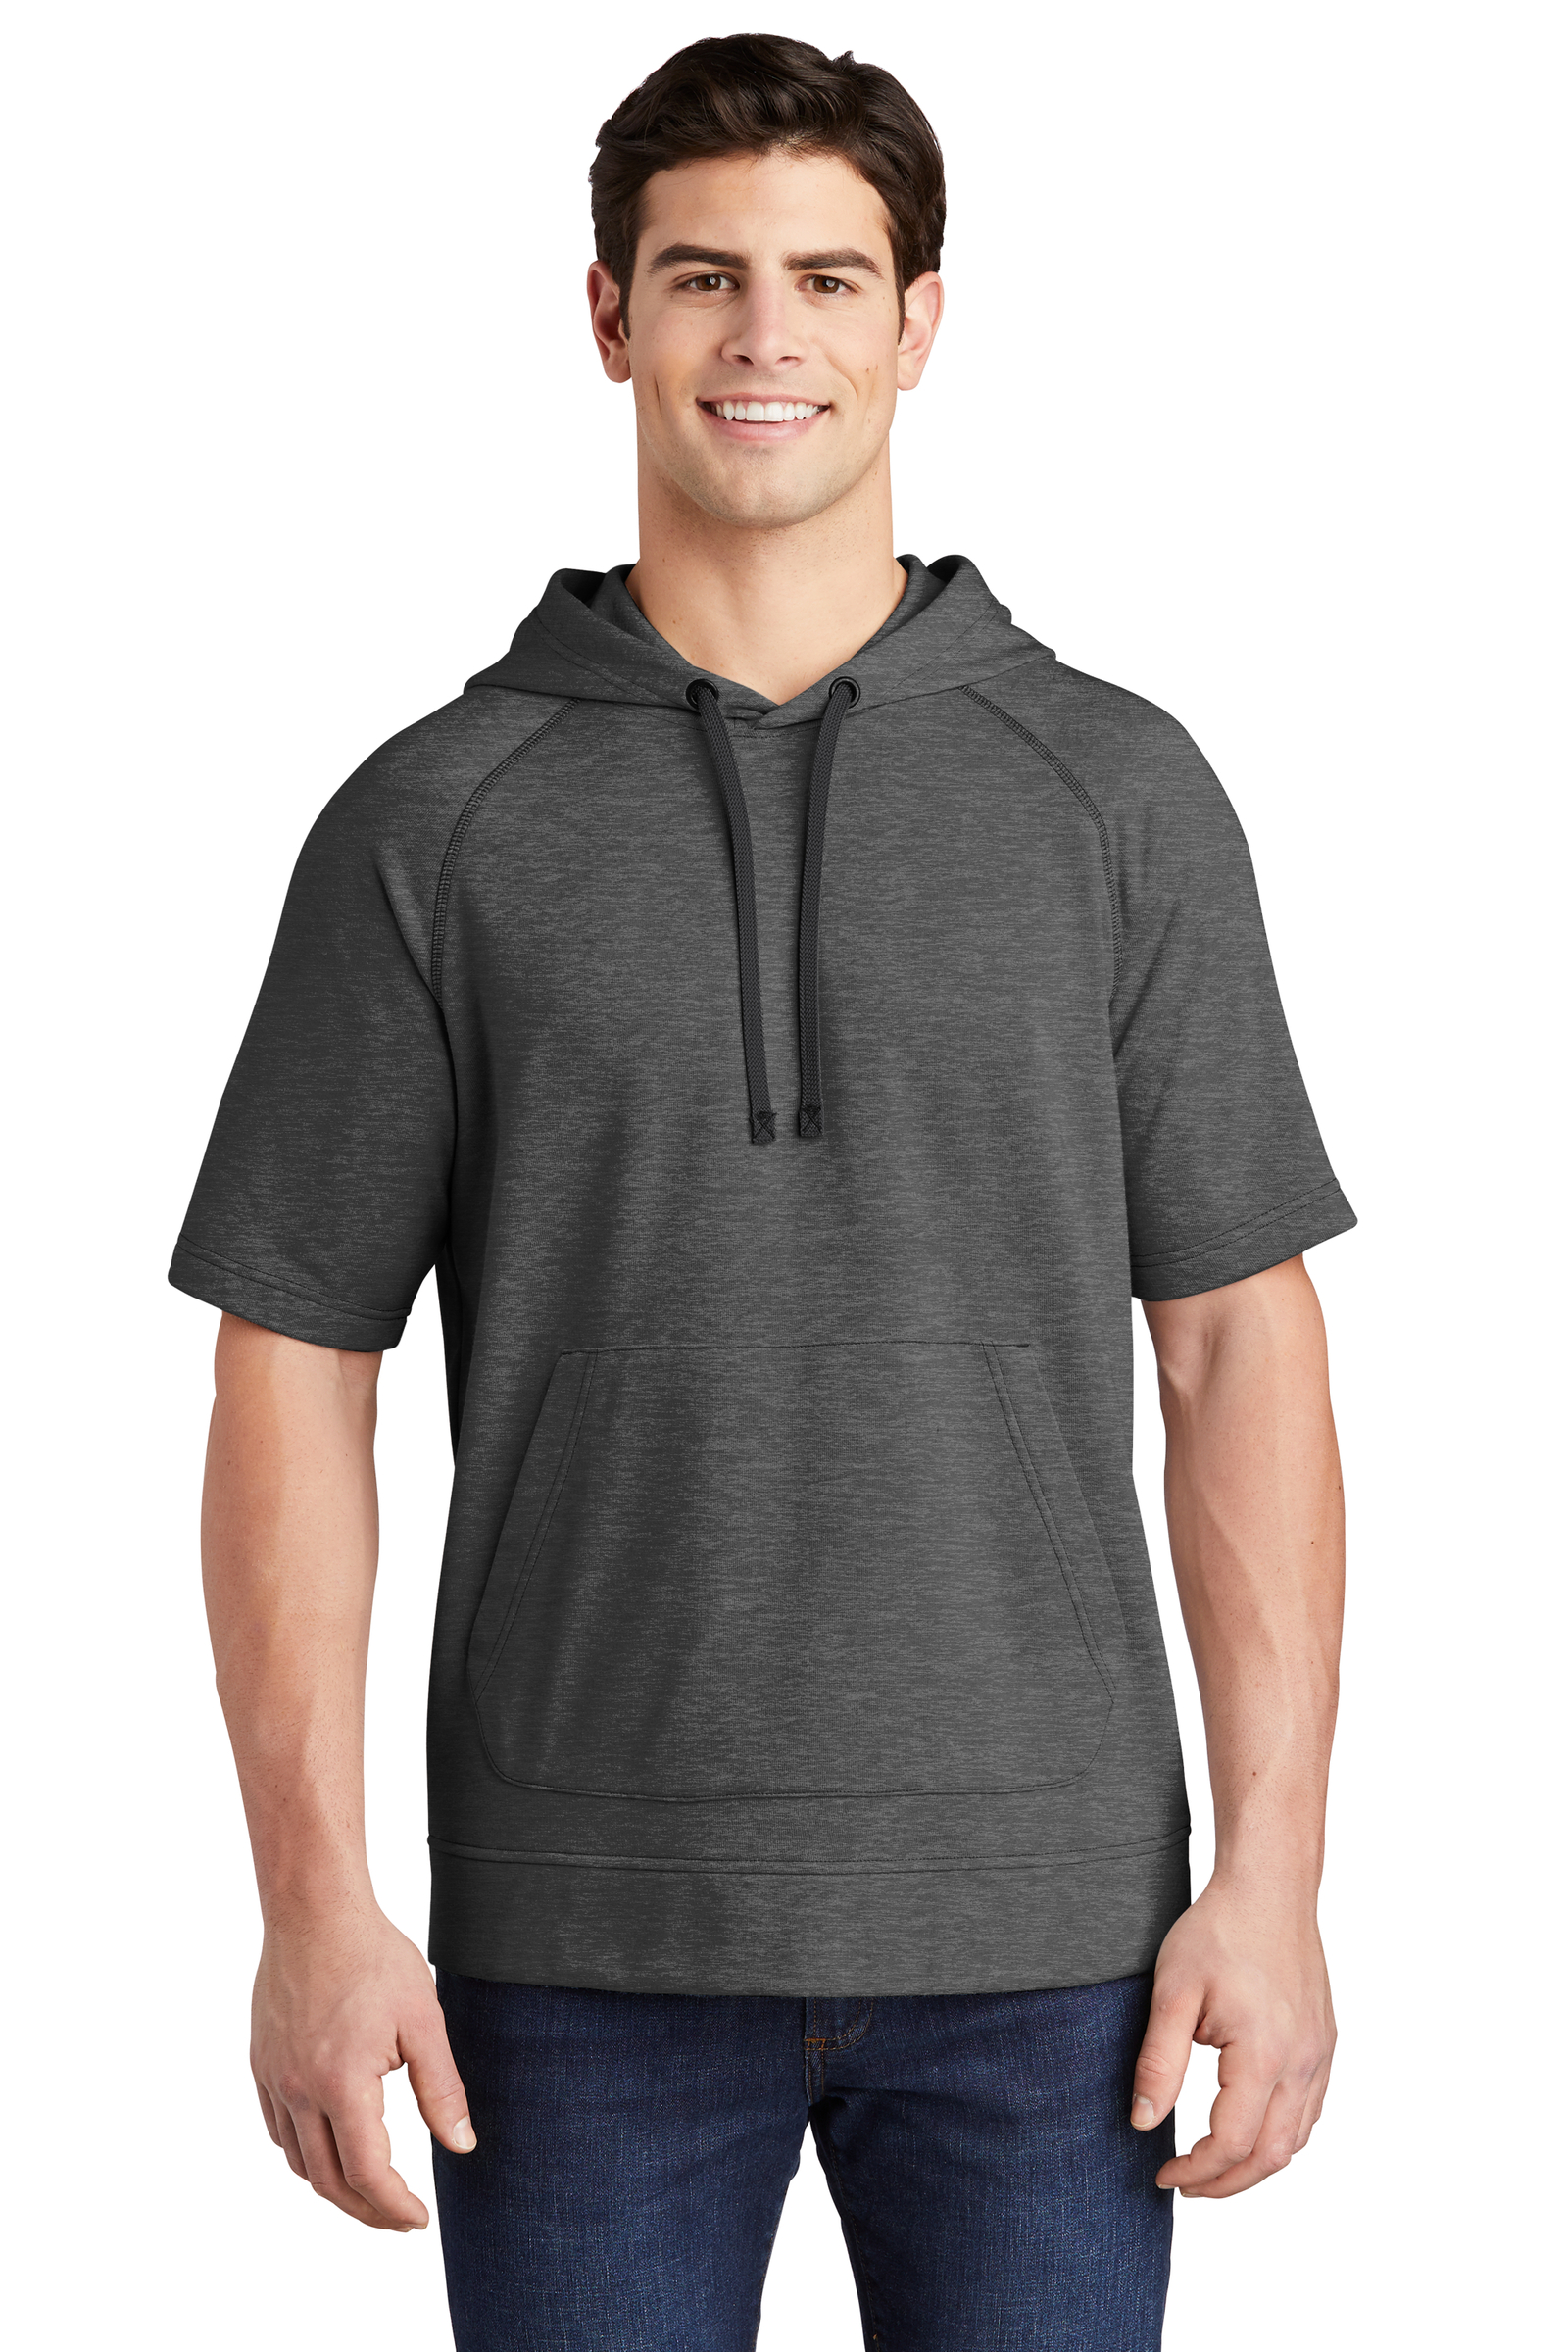 Sport-Tek Embroidered Men's Tri-Blend Short Sleeve Hoodie